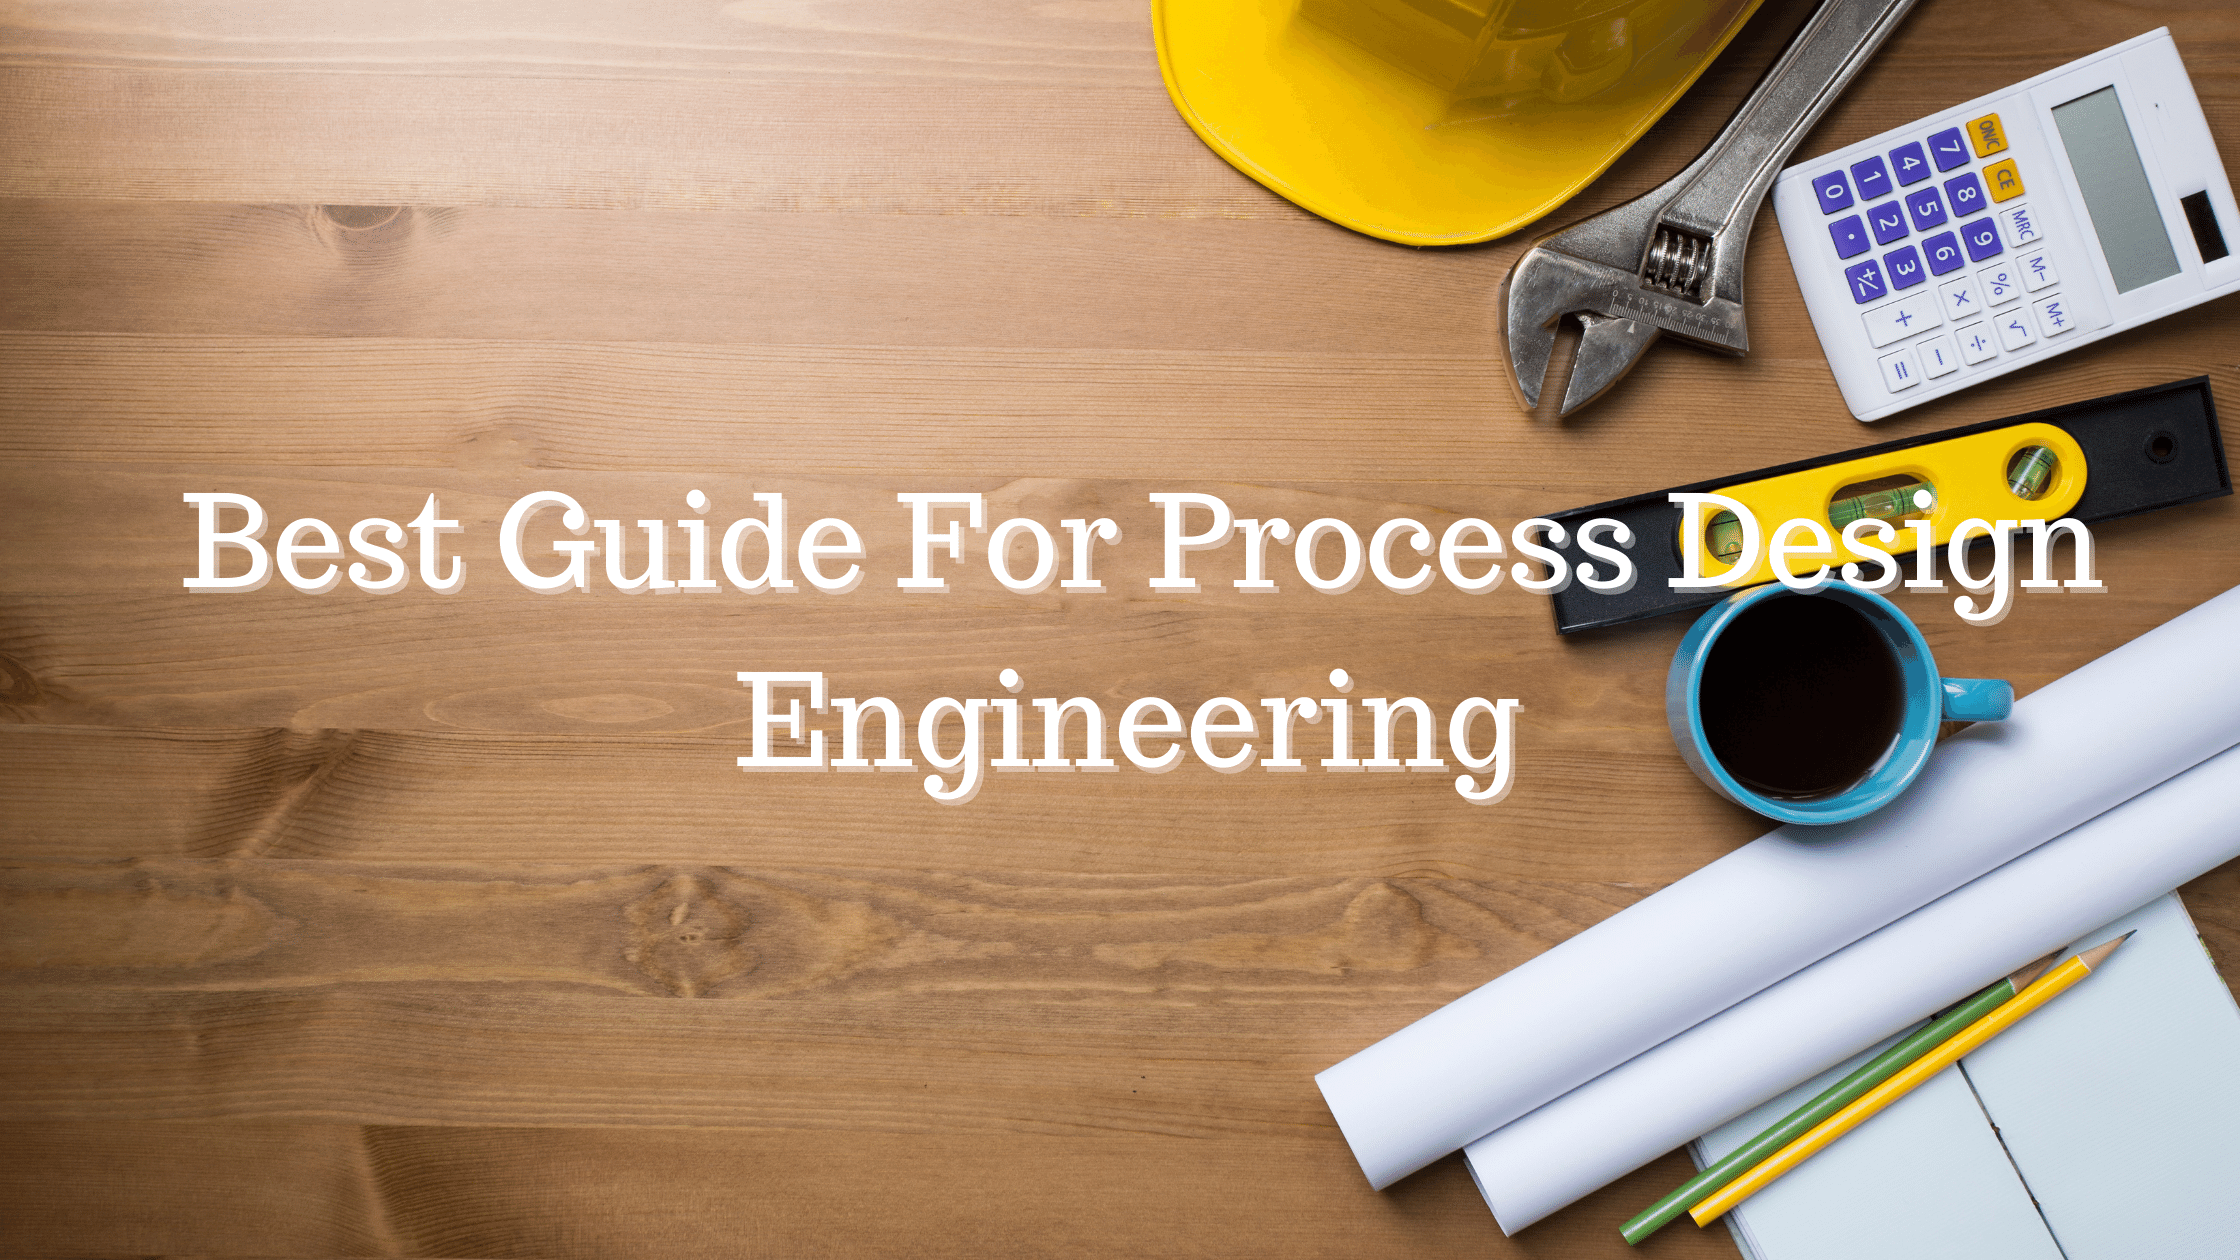 Best Guide For Process Design Engineering